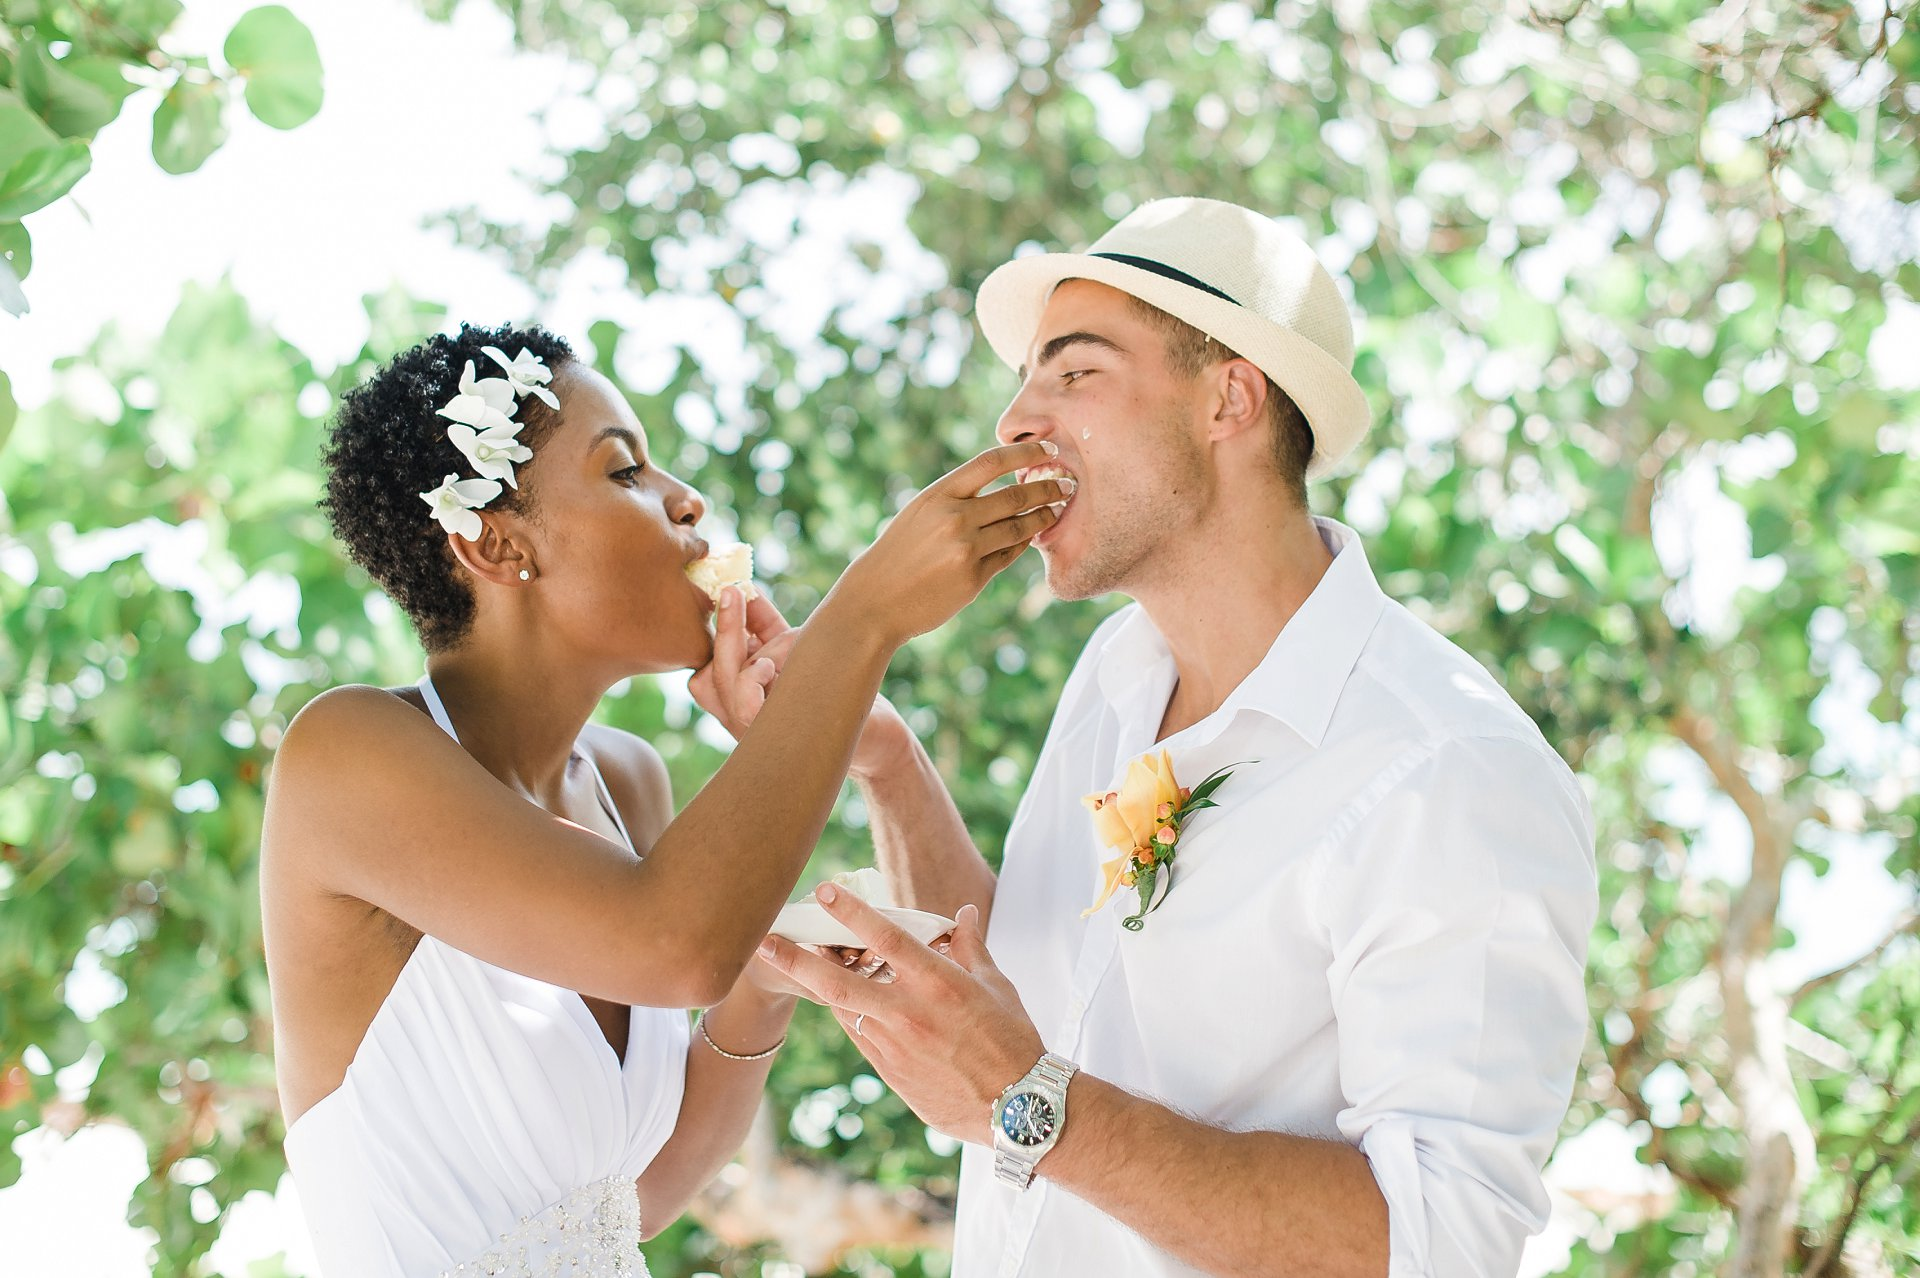 Couple feeds each other wedding cake at a tropical destination wedding.